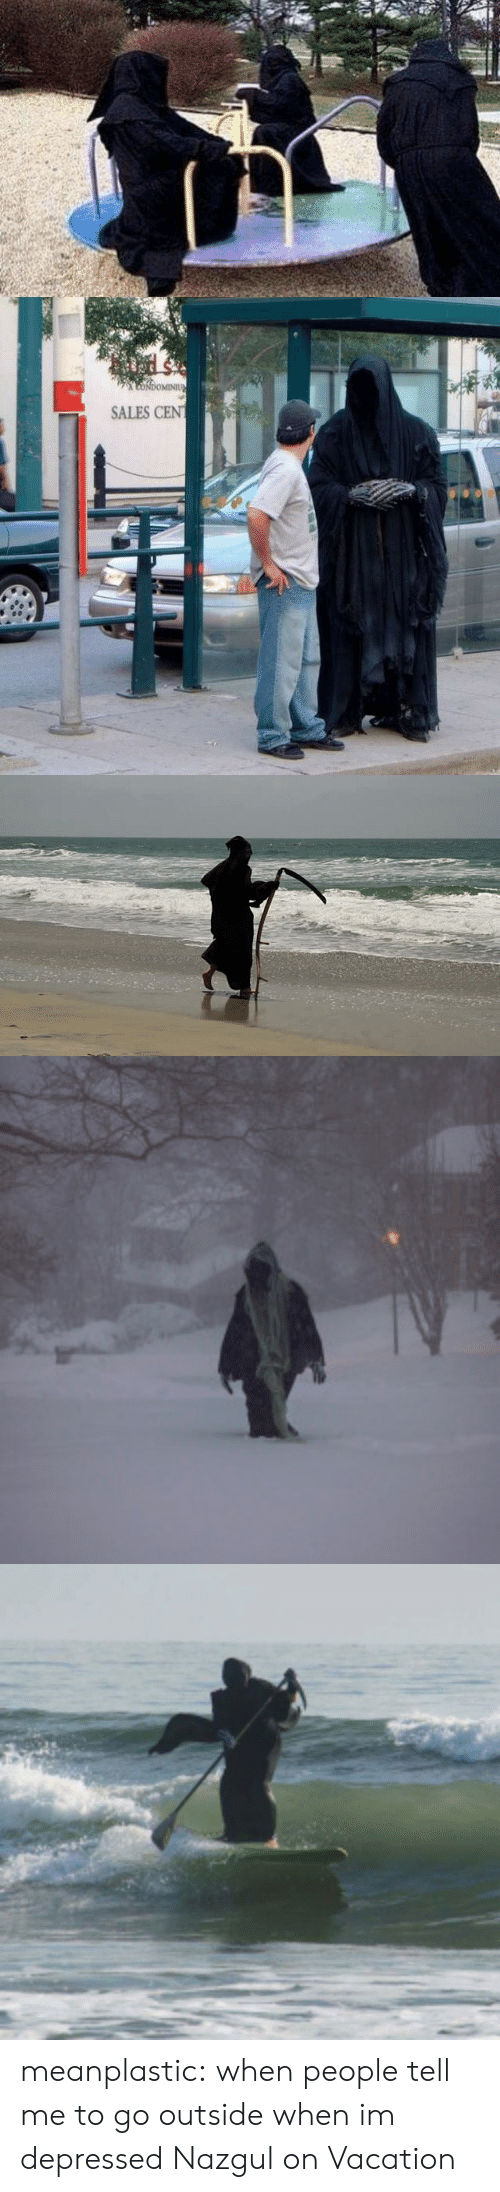 Im Depressed: CoNdoMINIU  SALES CEN meanplastic:  when people tell me to go outside when im depressed  Nazgul on Vacation